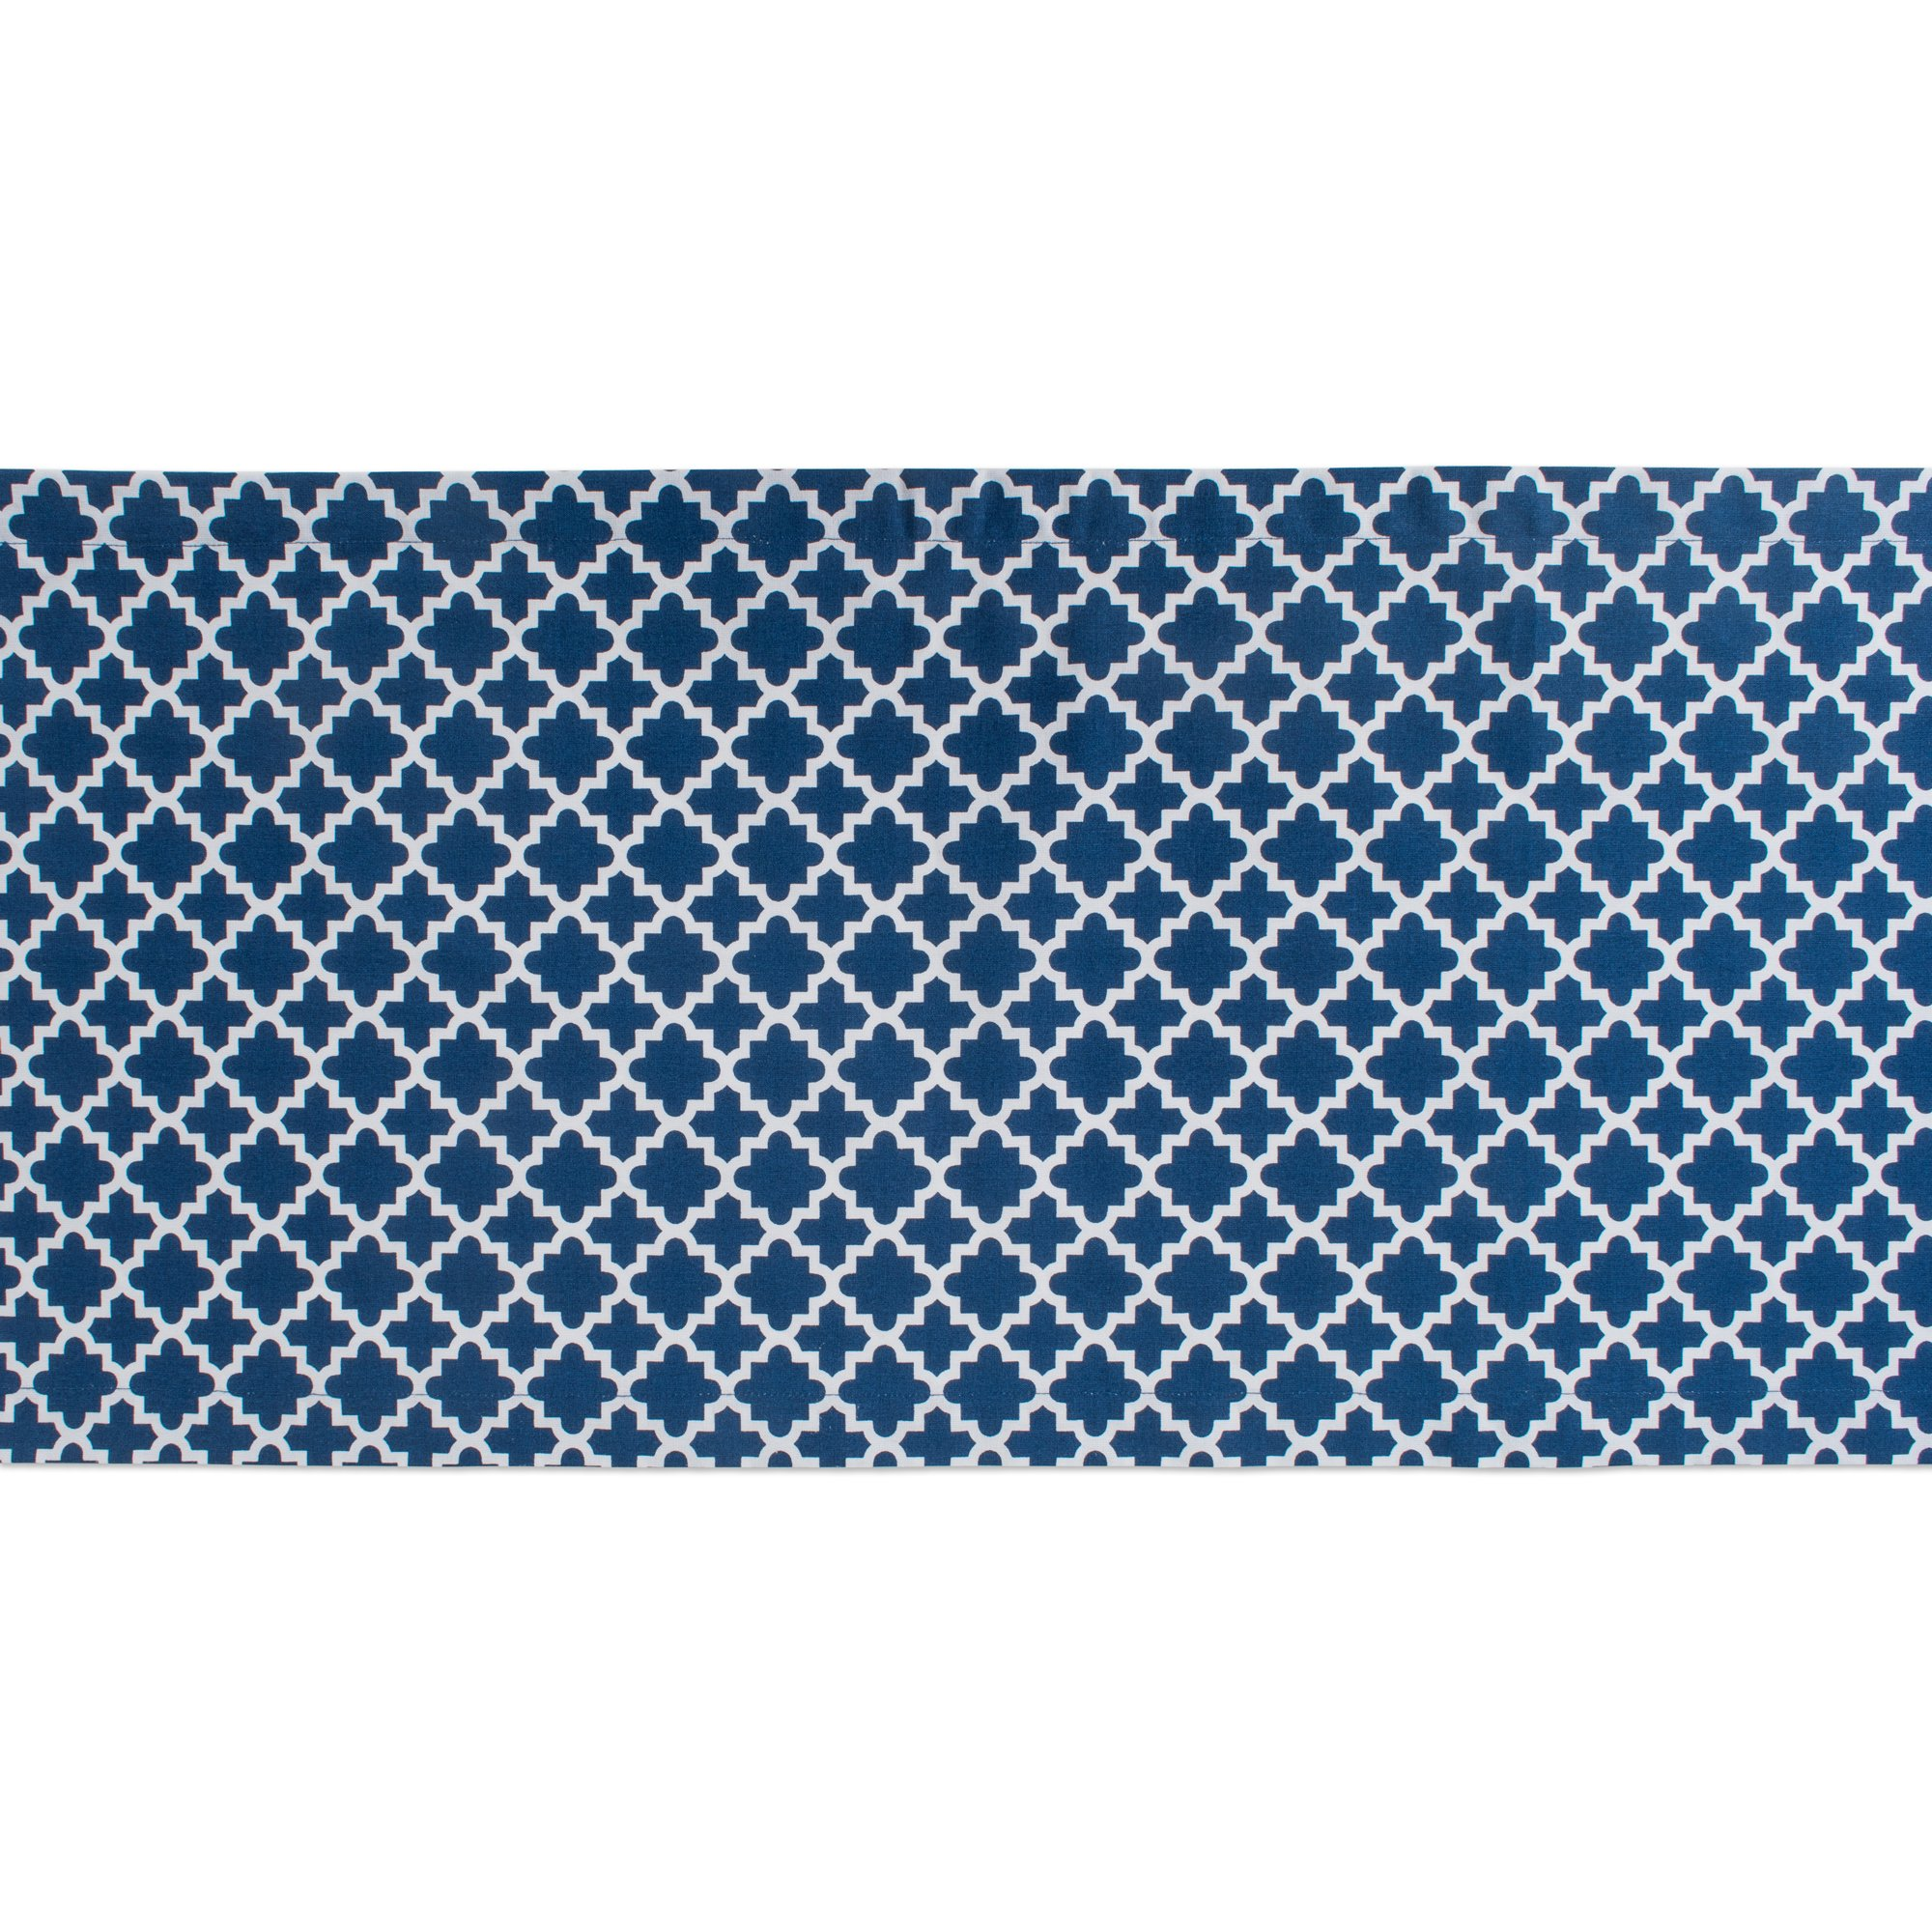 DII Lattice Cotton Table Runner for Dining Room, Foyer Table, Summer Parties and Everyday Use - 14x108'', Nautical Blue and White by DII (Image #3)